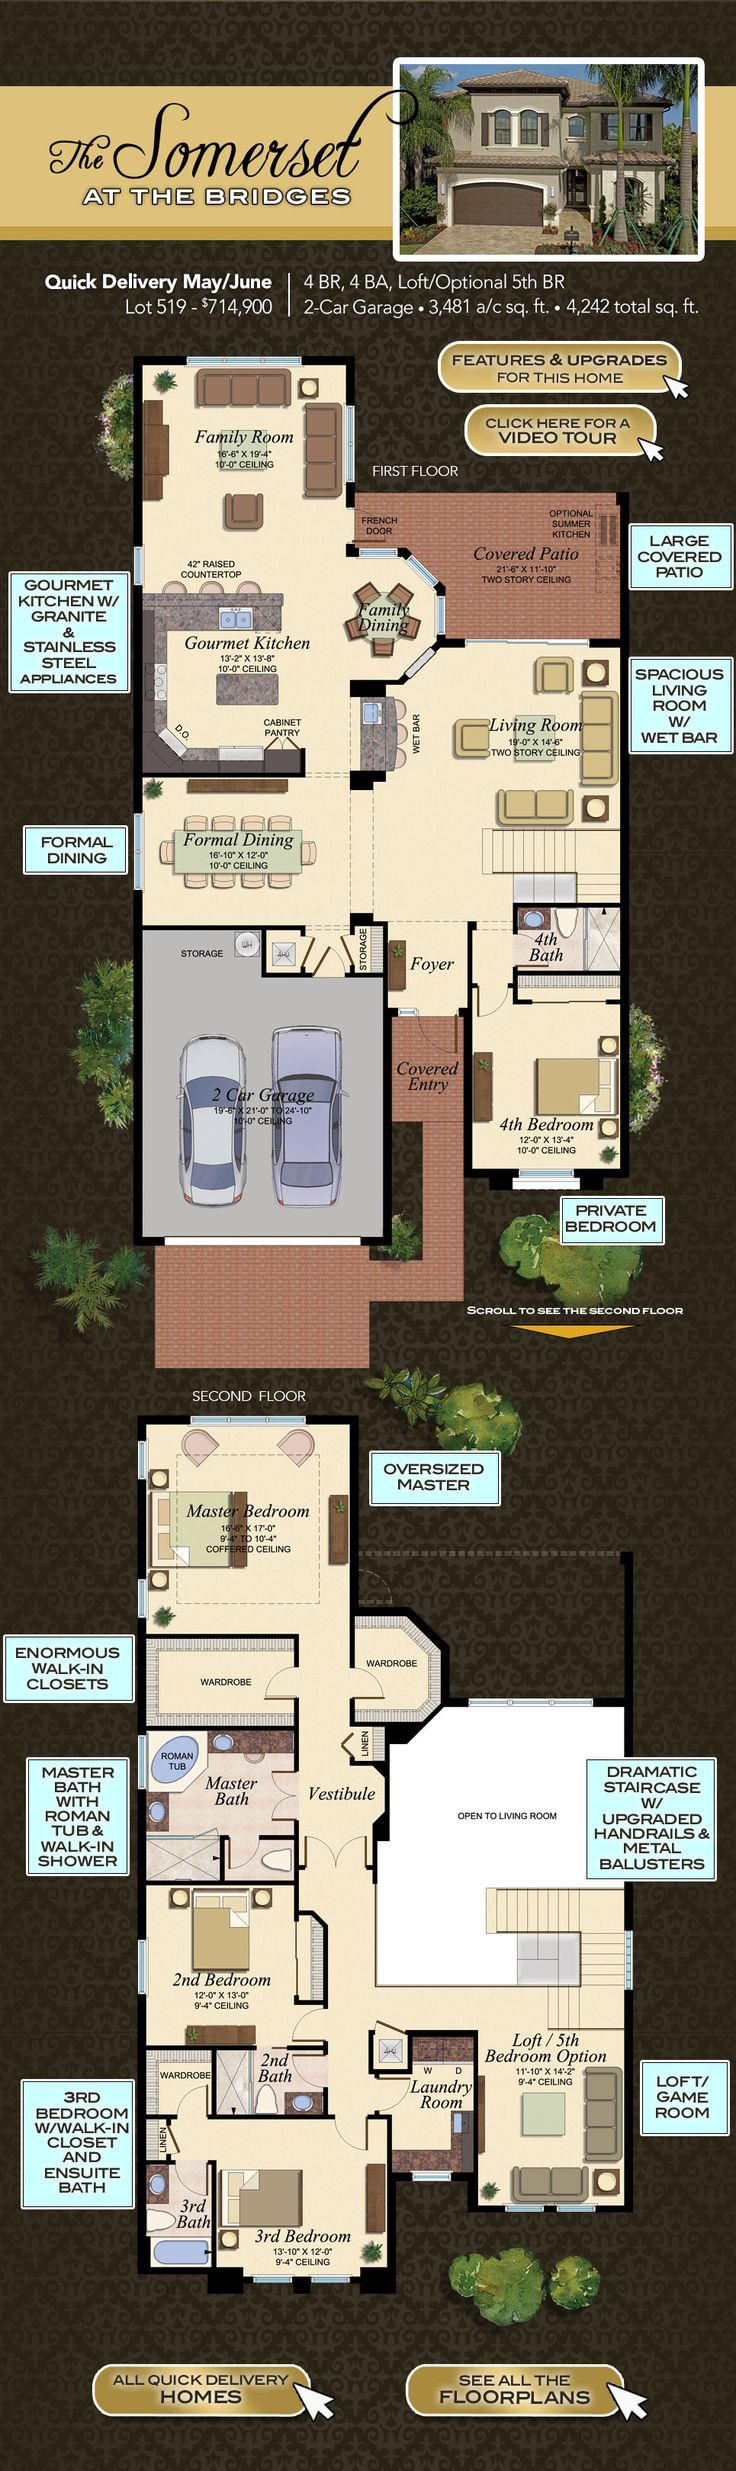 735 best images about house plans that are cute on pinterest house